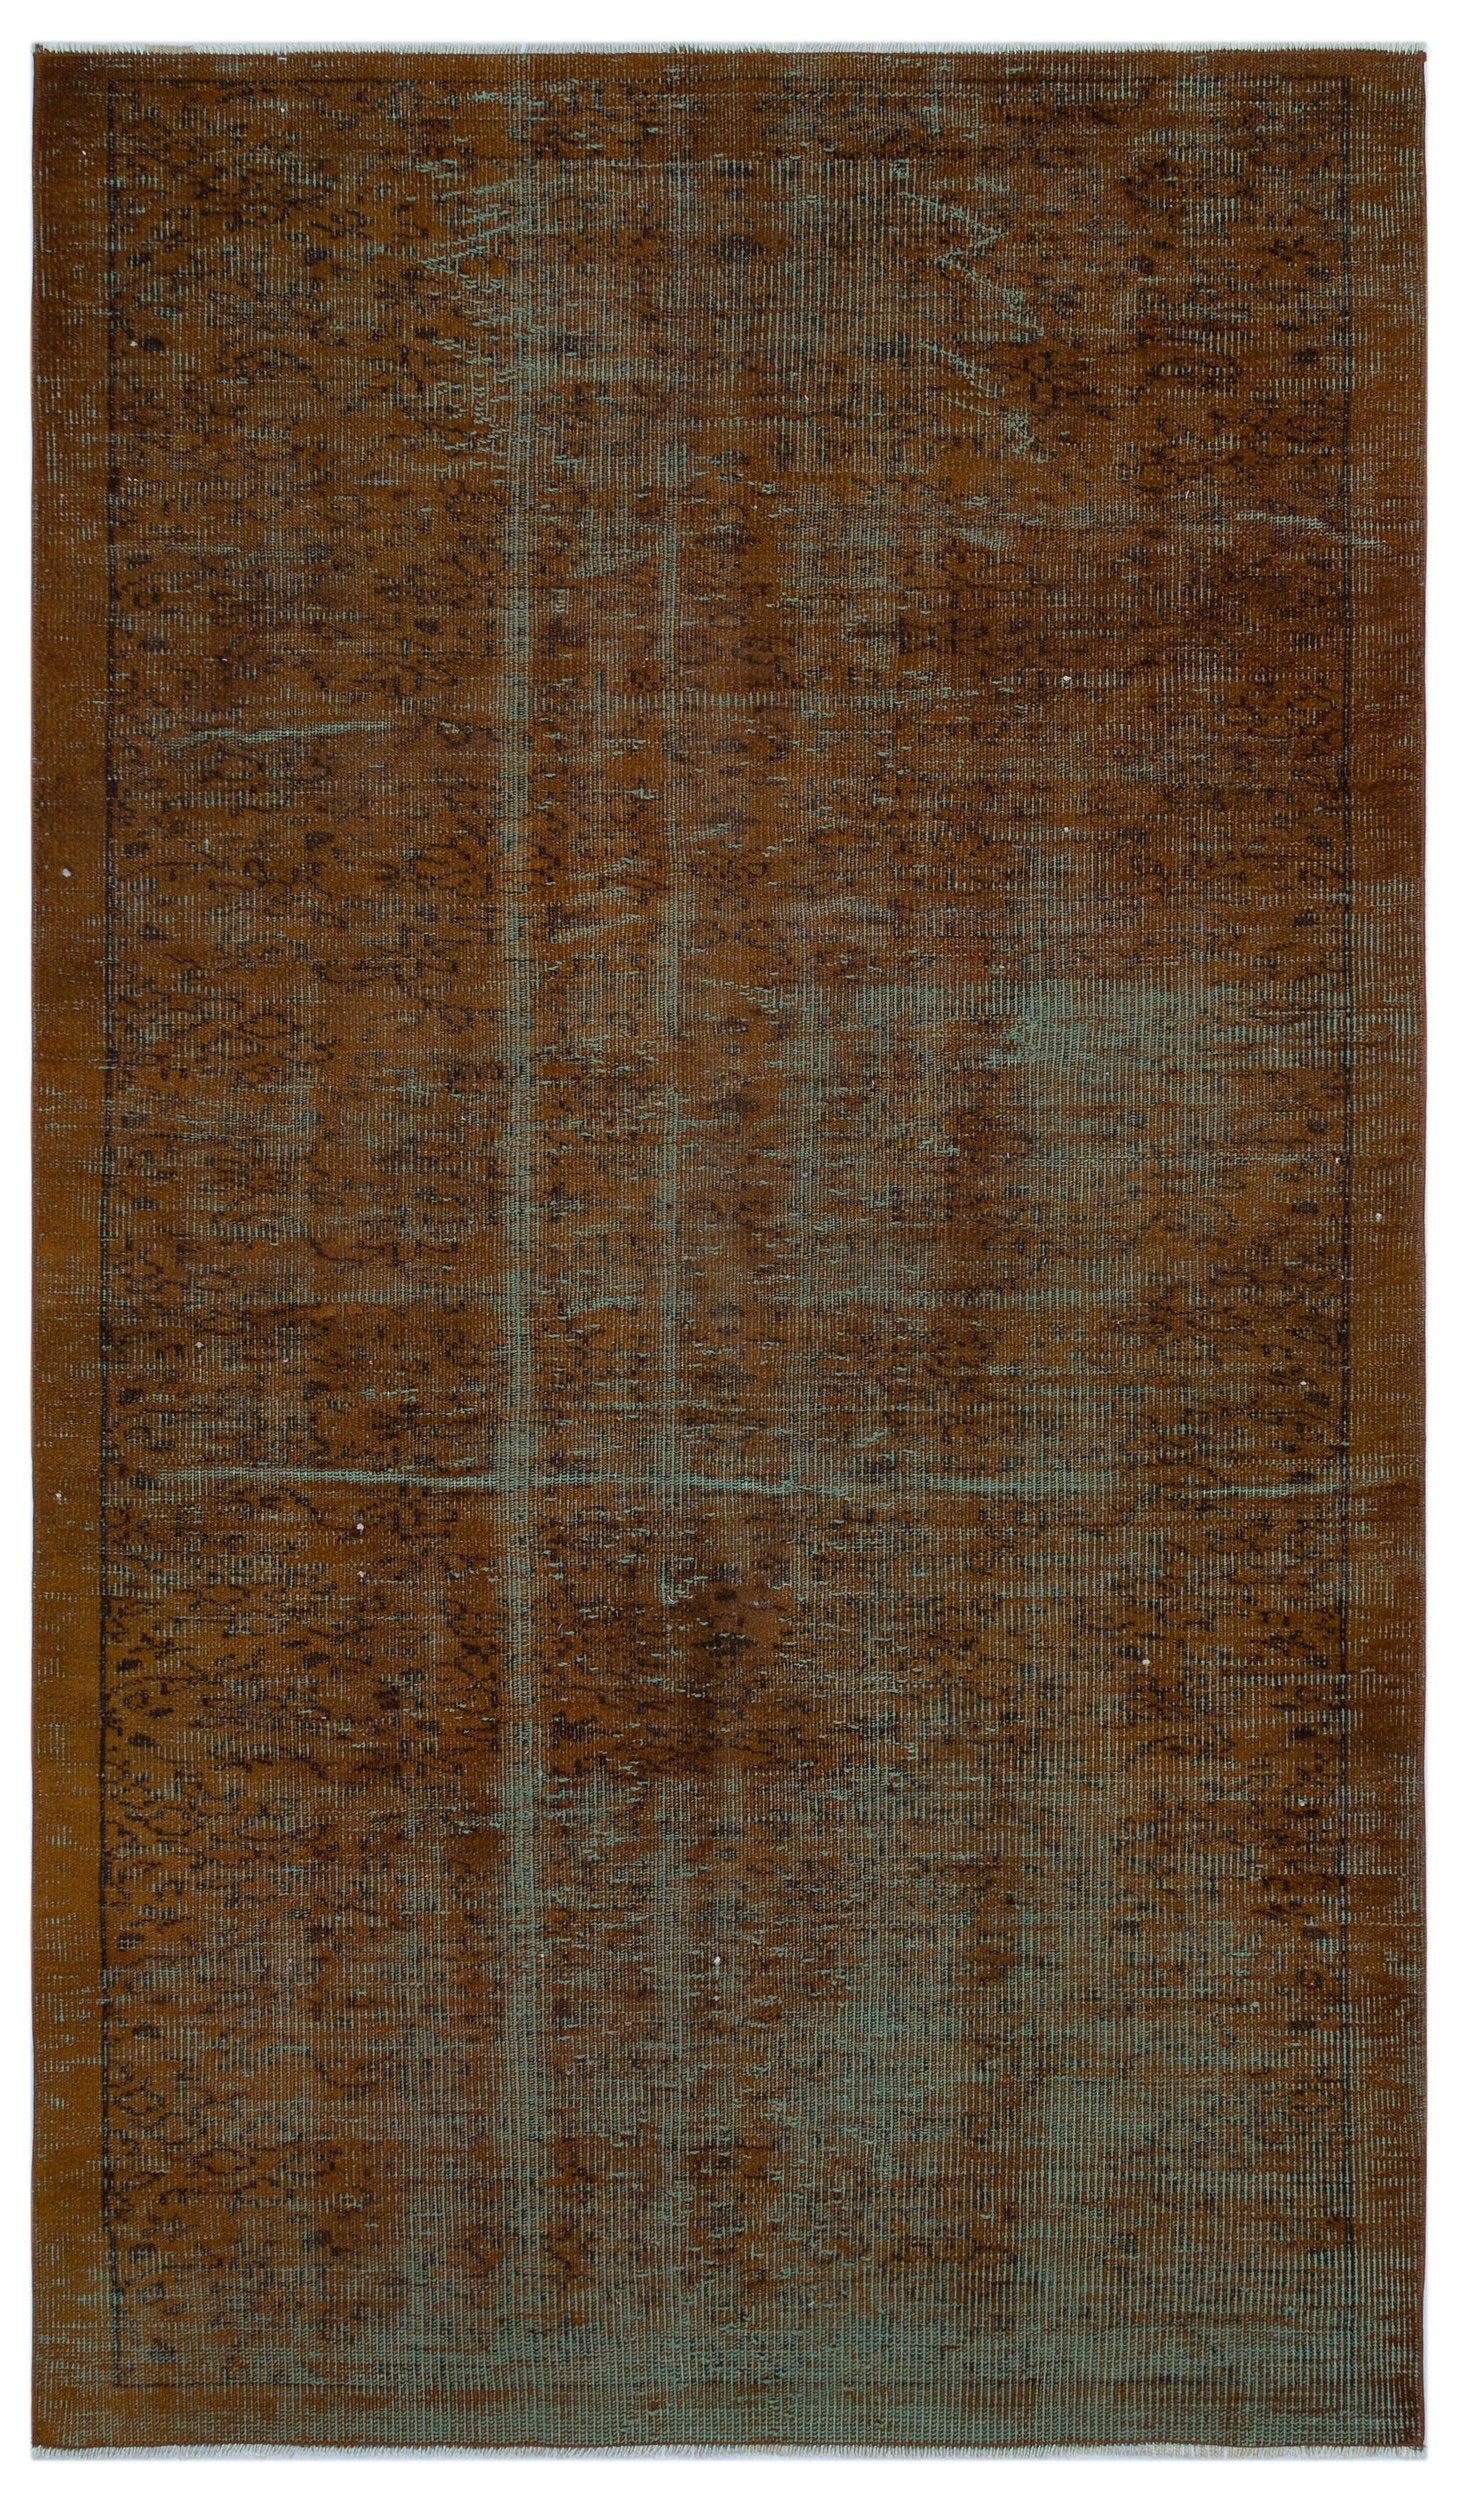 Brown Over Dyed Vintage Rug 4'9'' x 8'2'' ft 145 x 250 cm